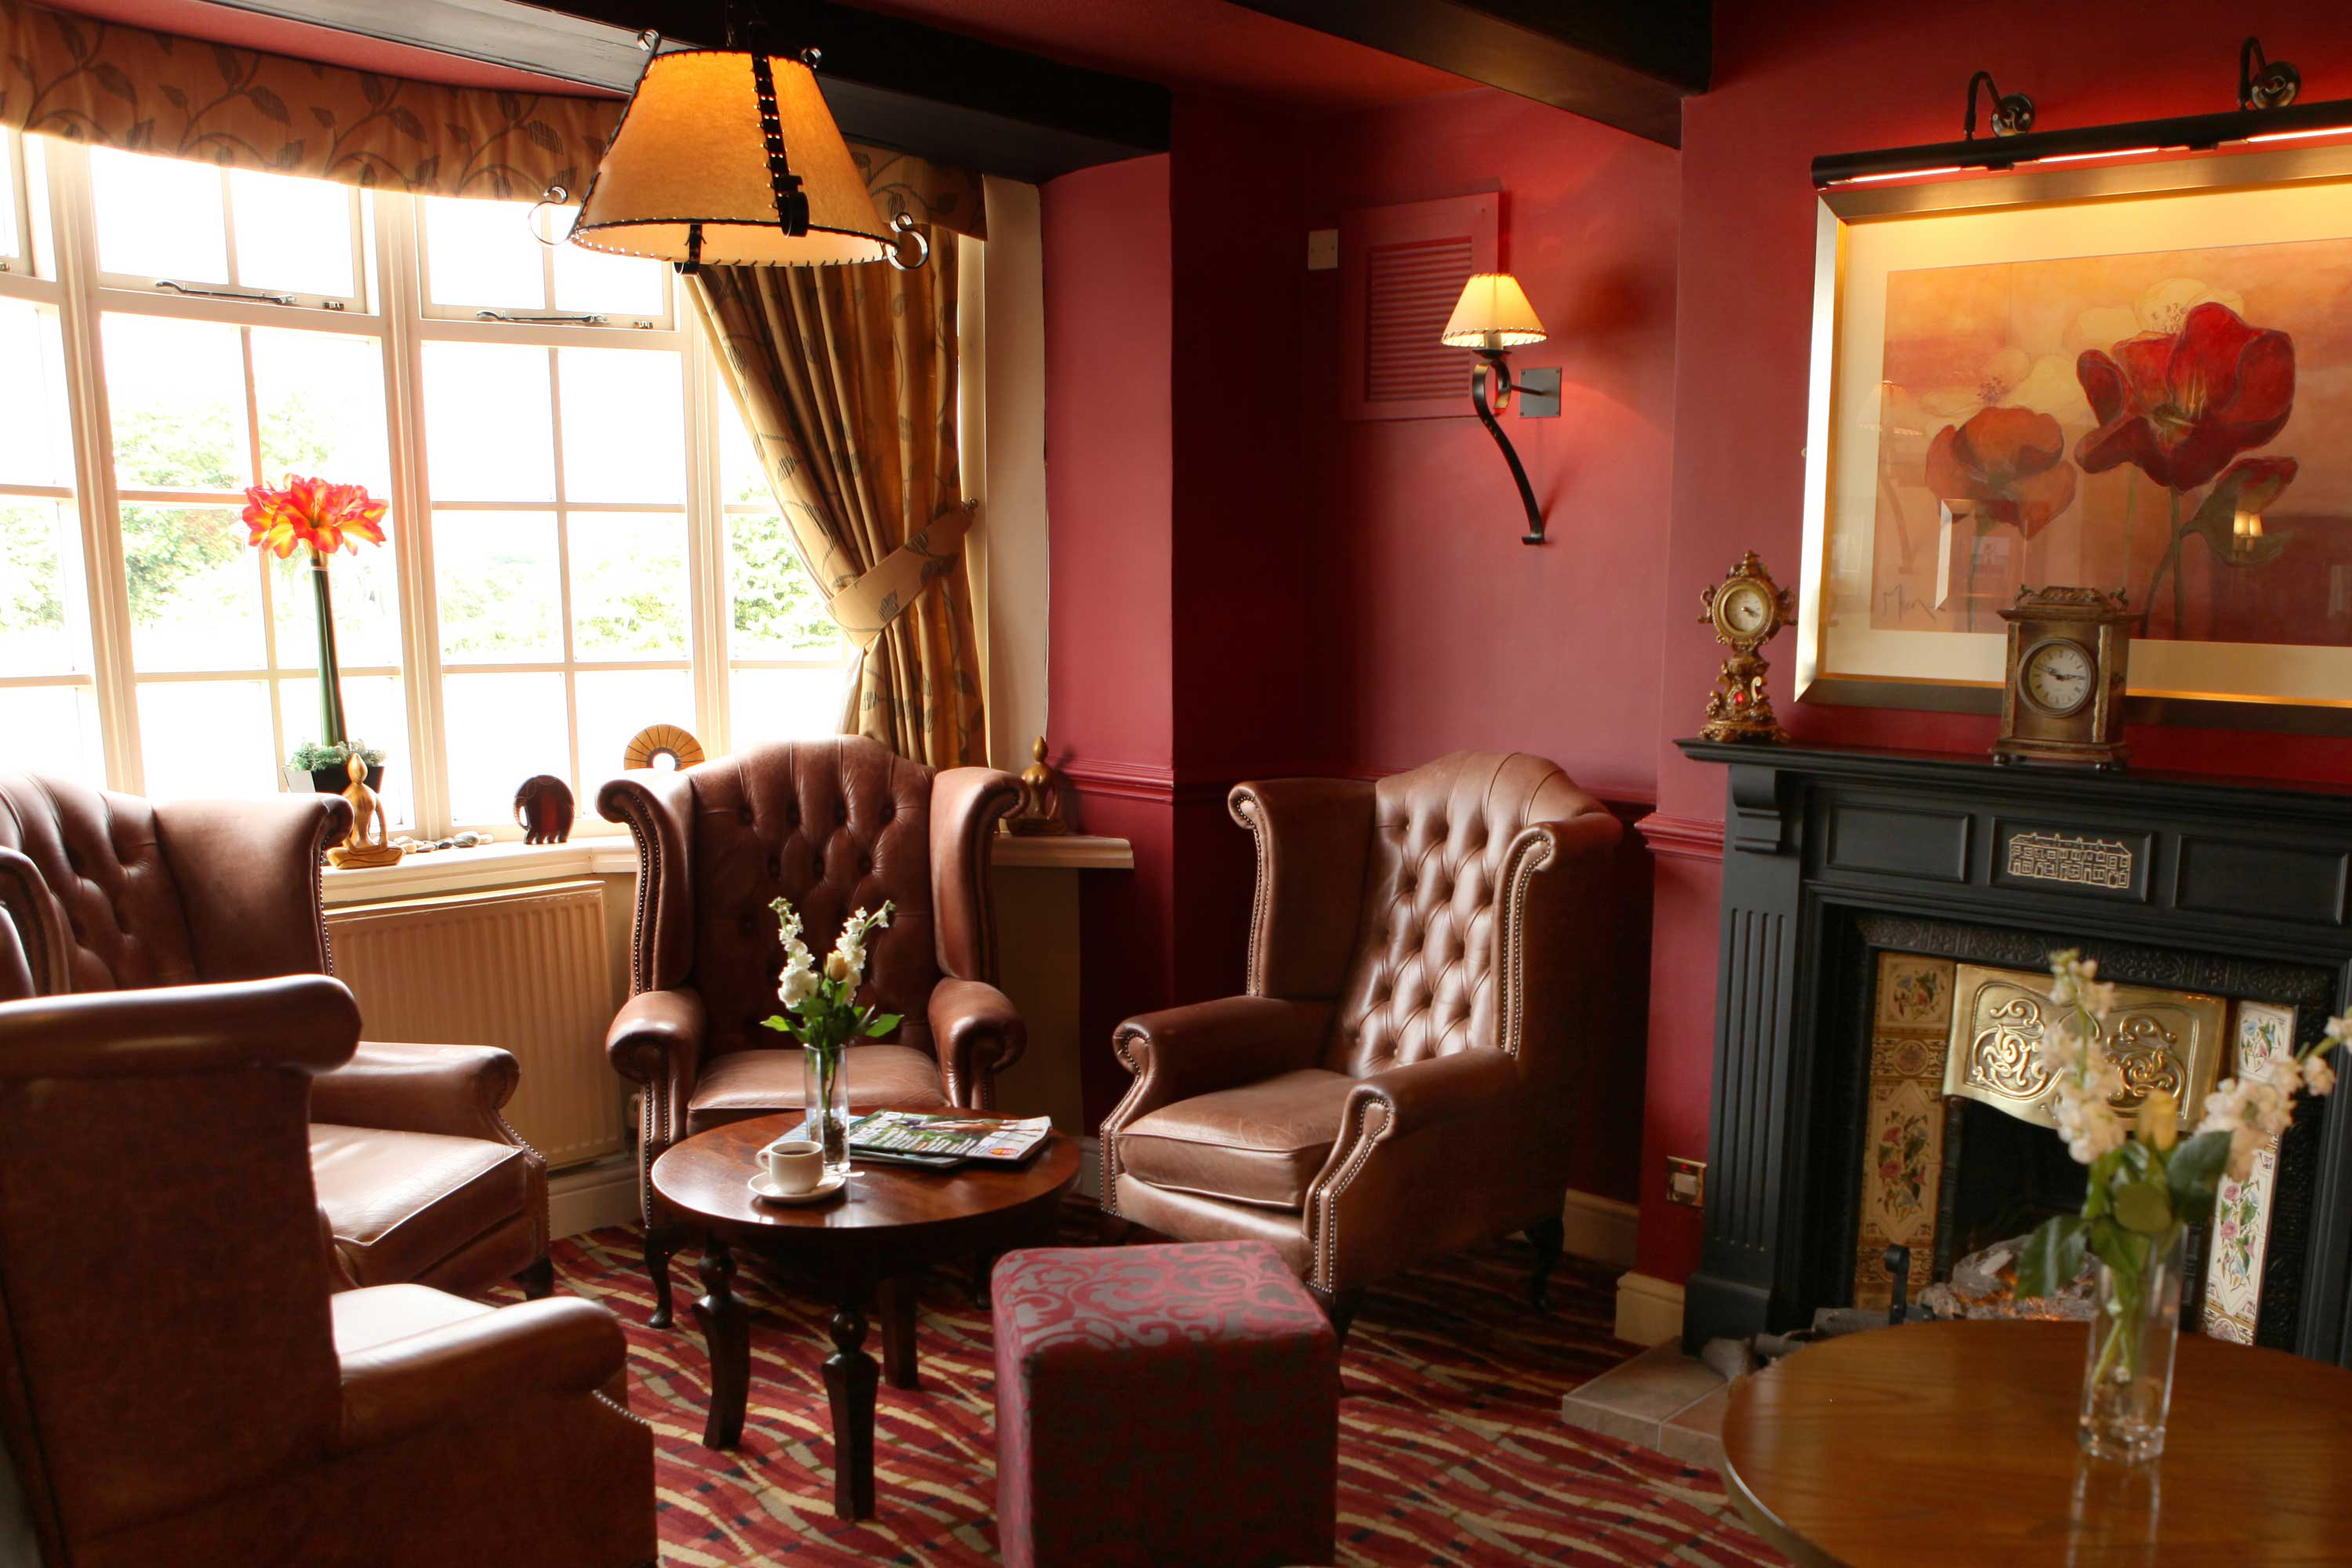 Relaxing atmosphere at Whitehouses Inn, Retford